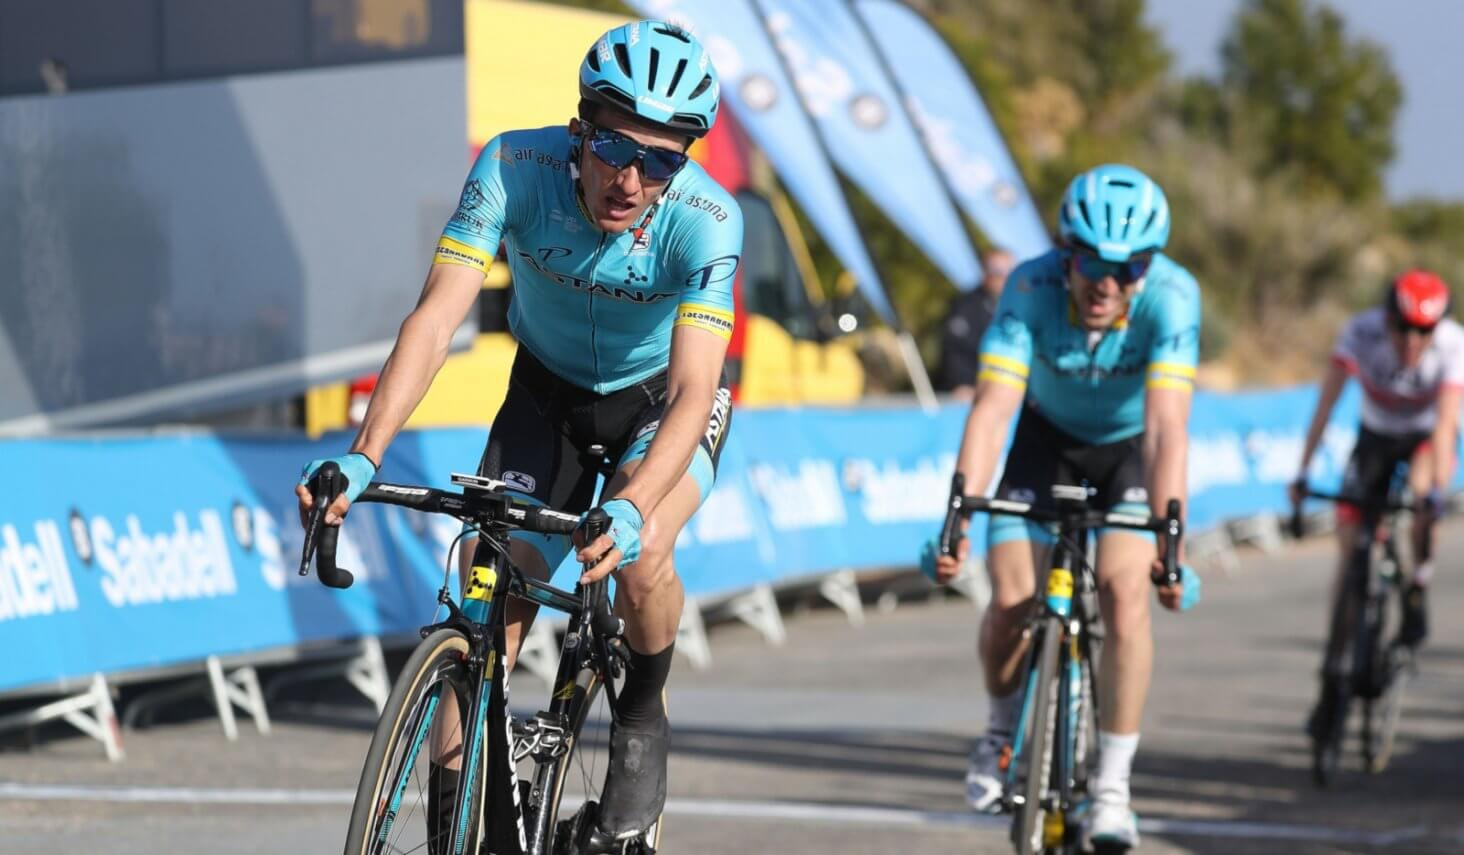 Northwave - Valenciana: Bilbao third in Queen stage as Izagirre takes lead